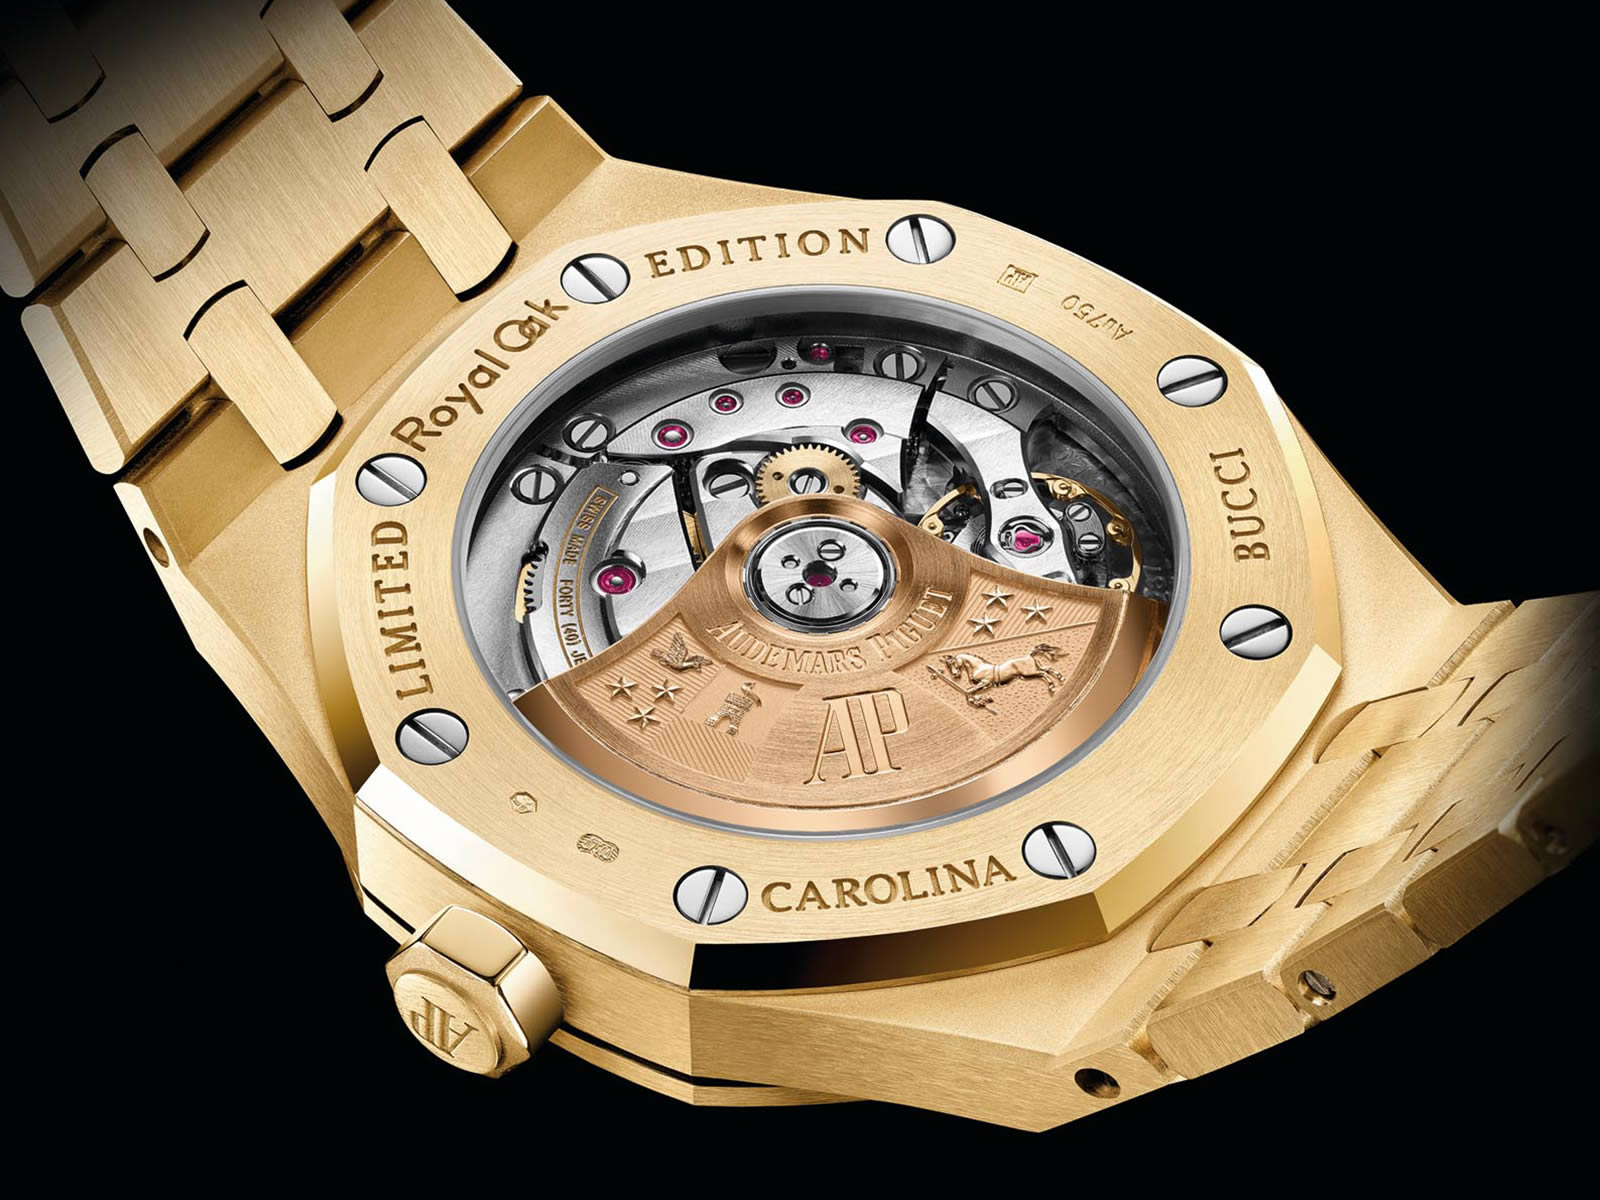 15454or-gg-1259or-03-audemars-piguet-royal-oak-carolina-bucci-limited-edition-12-.jpg